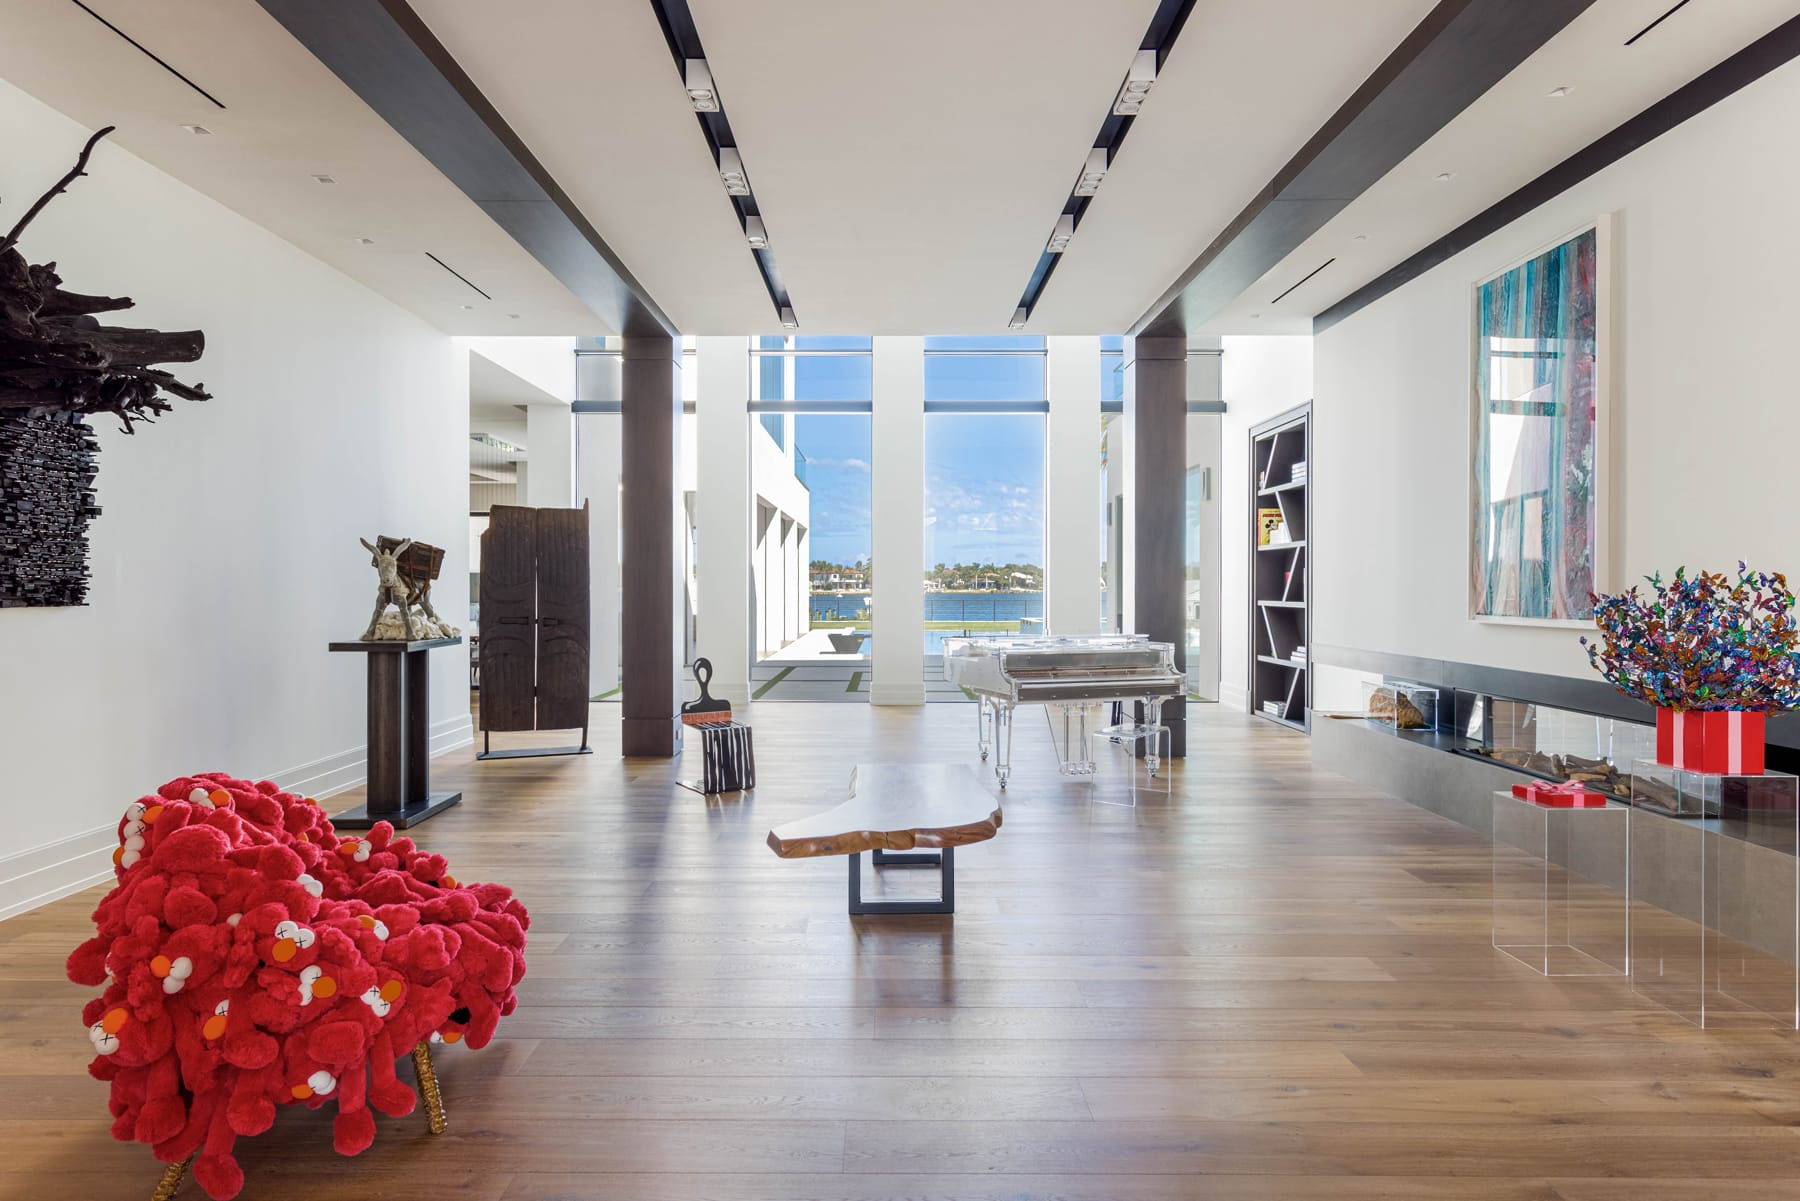 Private Residence   South Florida   Interior Area 1   Luxury Residential   Interior Design